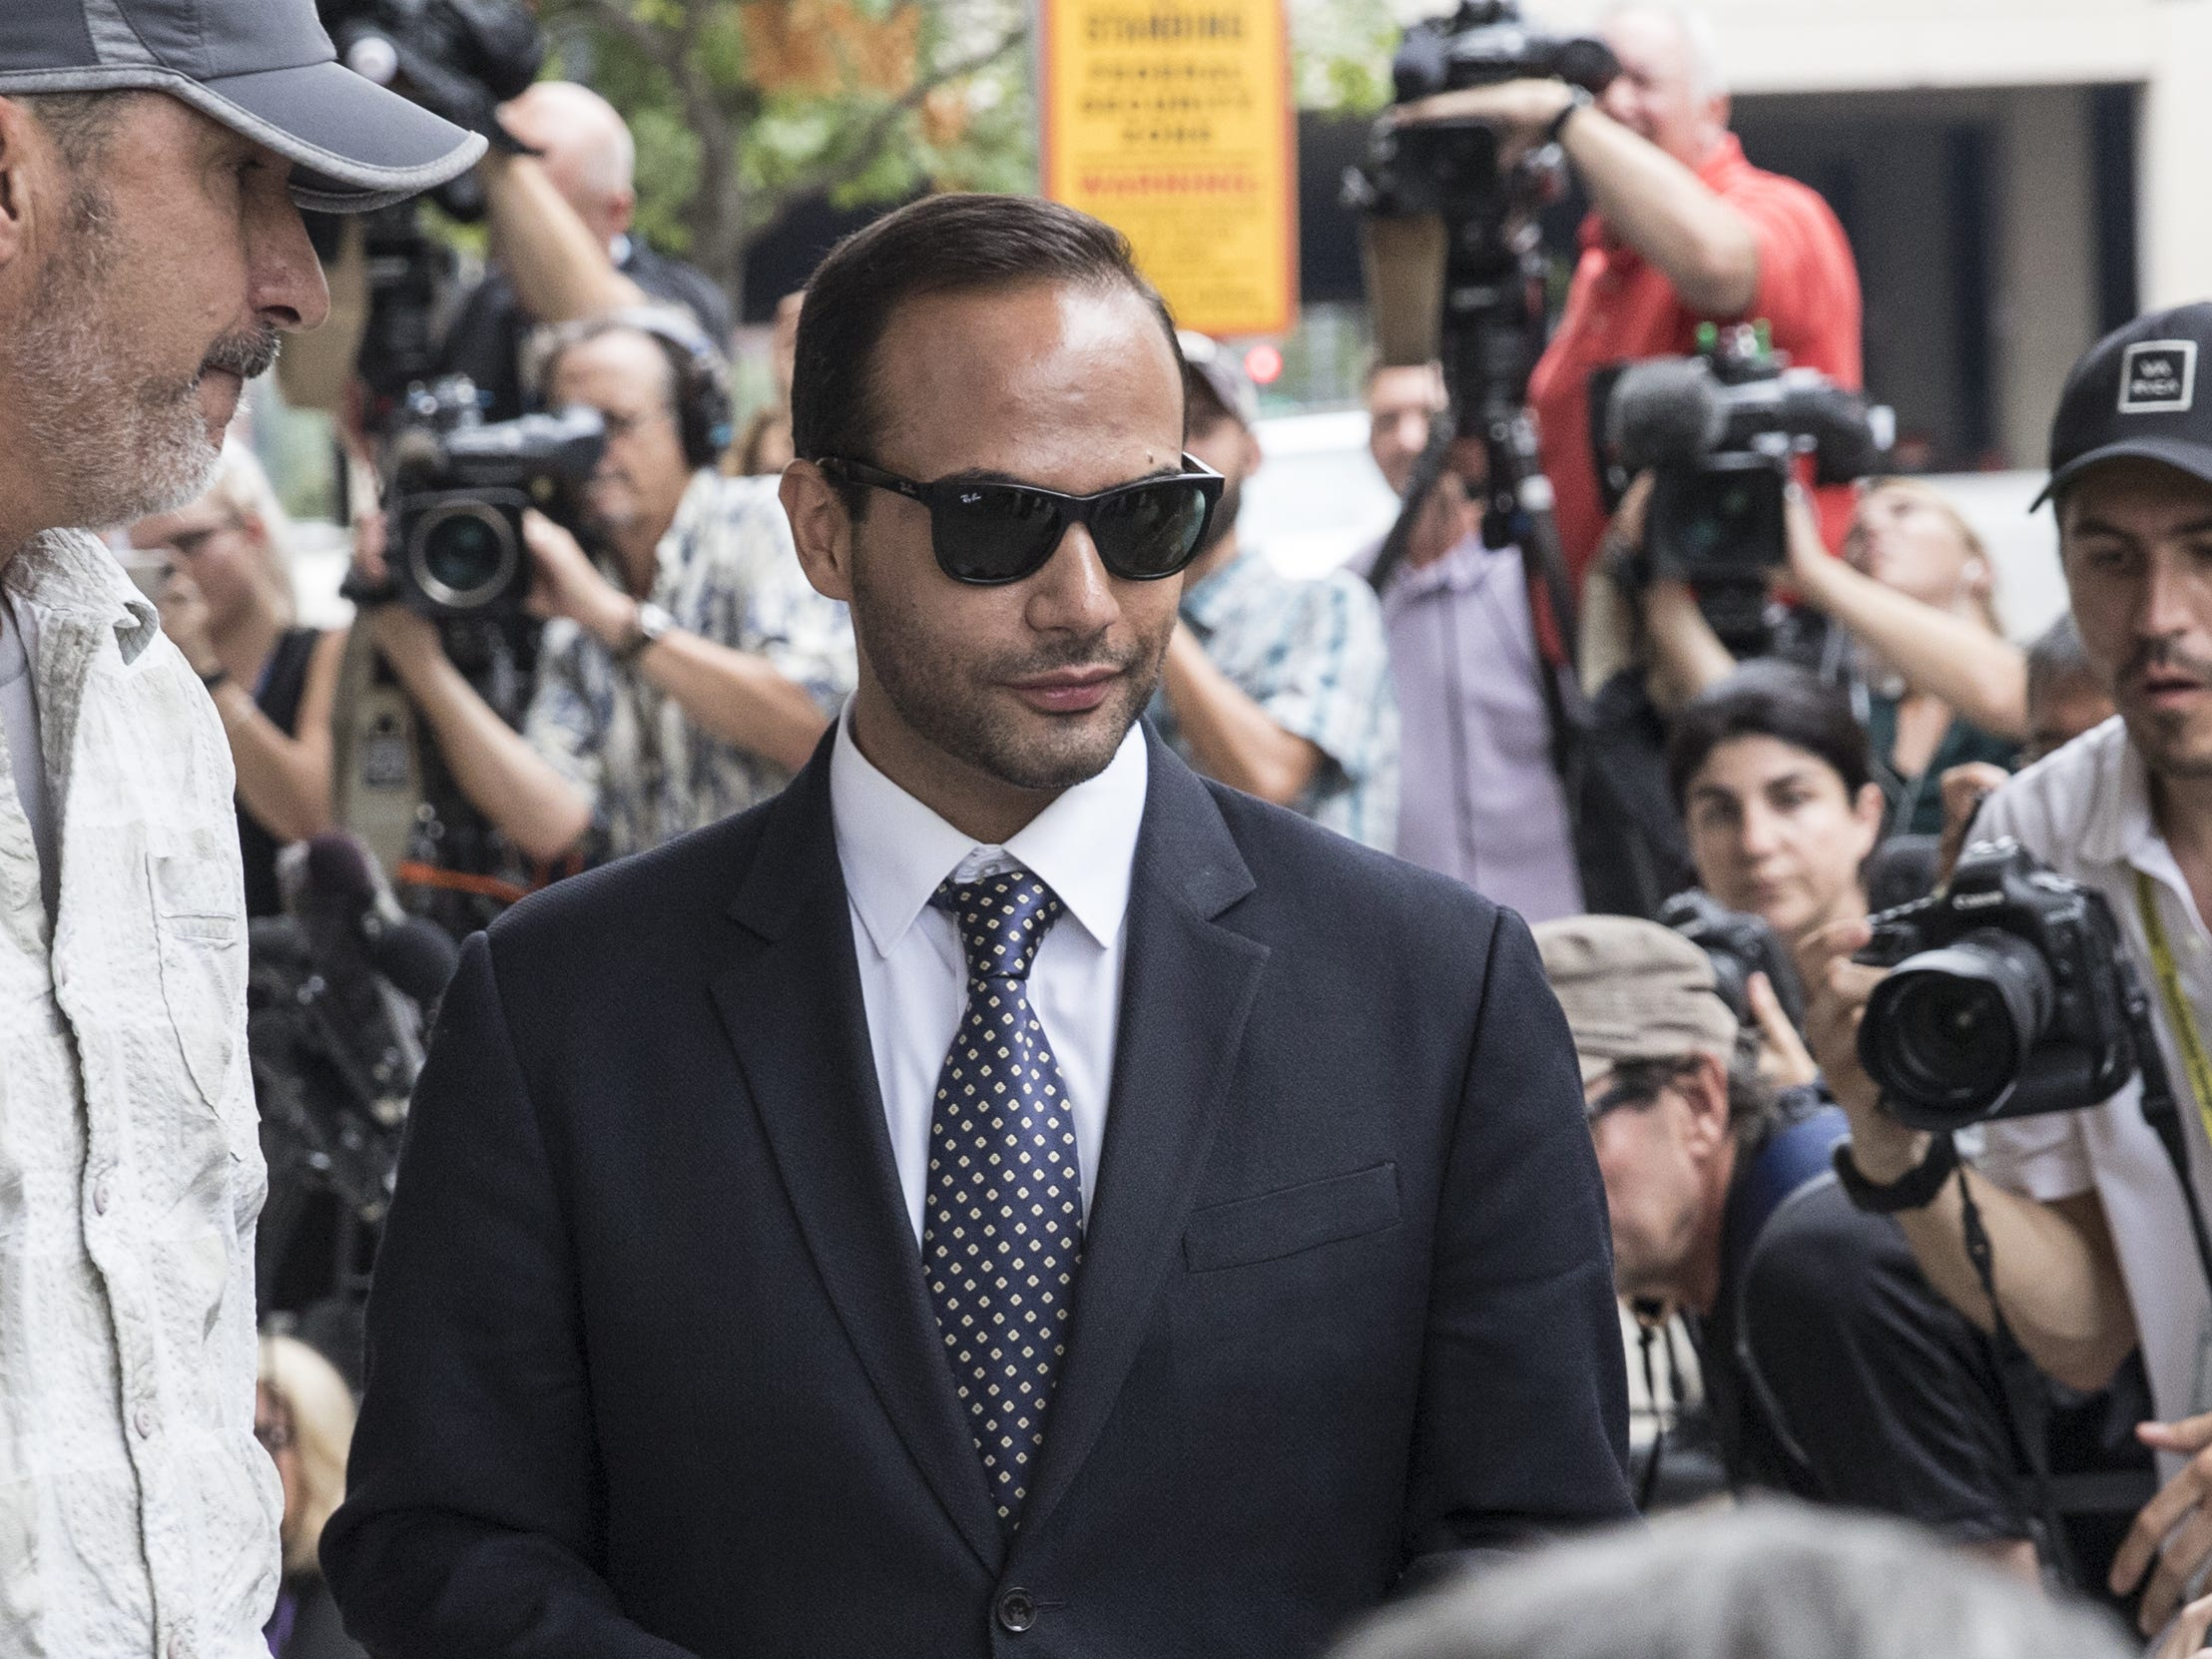 """WASHINGTON, DC - SEPTEMBER 07: Former Trump Campaign aide George Papadopoulos leaves the U.S. District Court after his sentencing hearing on September 7, 2018 in Washington, DC. Papadopoulos pleaded guilty last year for making a """"materially false, fictitious and fraudulent statement"""" to investigators during FBI's probe of Russian interference during the 2016 presidential election.   (Photo by Alex Wroblewski/Getty Images) ***BESTPIX*** ORG XMIT: 775185310 ORIG FILE ID: 1028761488"""